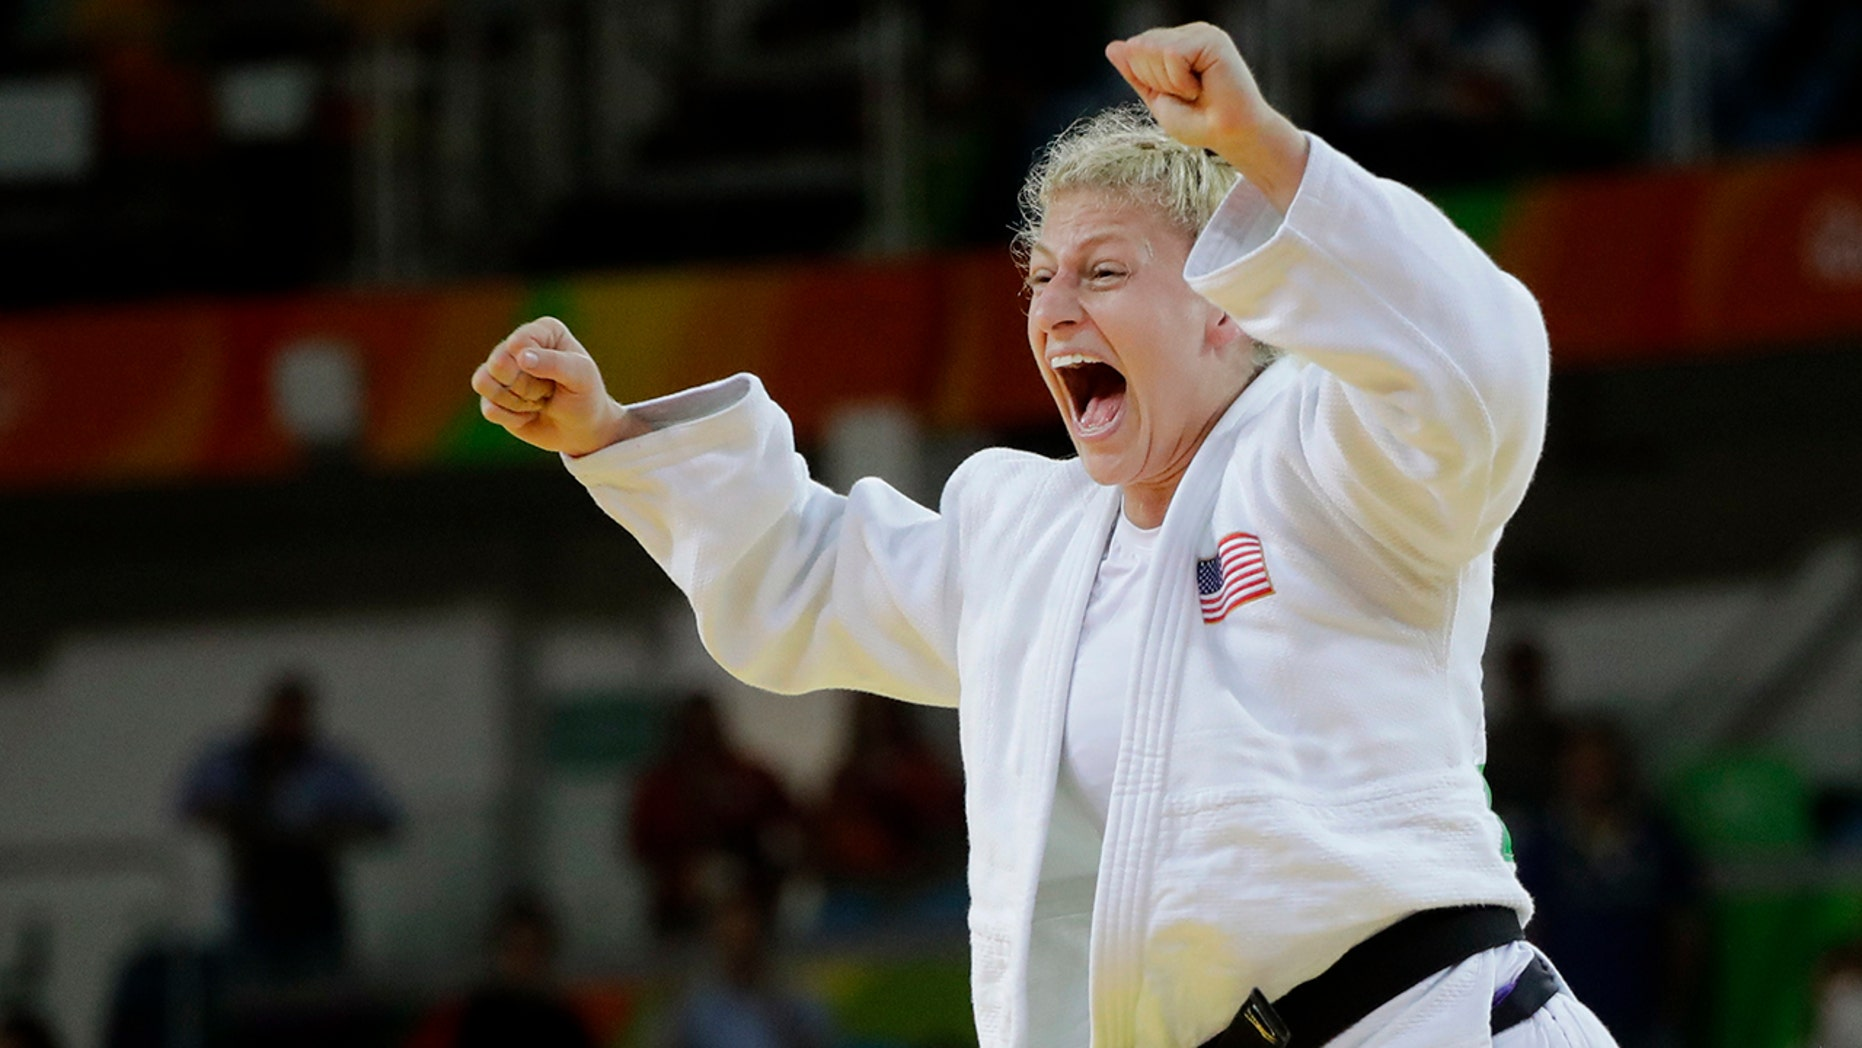 FILE - In this Thursday, Aug. 11, 2016, file photo, United States' Kayla Harrison celebrates after defeating France's Audrey Tcheumeo in the women's 78-kg judo gold medal match at the 2016 Summer Olympics in Rio de Janeiro, Brazil. Harrison improved to 5-0 in her short MMA career, Thursday, July 11, 2019, in Atlantic City, N.J., and remains in the hunt to win $1 million as PFL's lightweight champion. Harrison made Morgan Frier tap out in the first round of their fight on the PFL4 card. (AP Photo/Jae C. Hong, File)